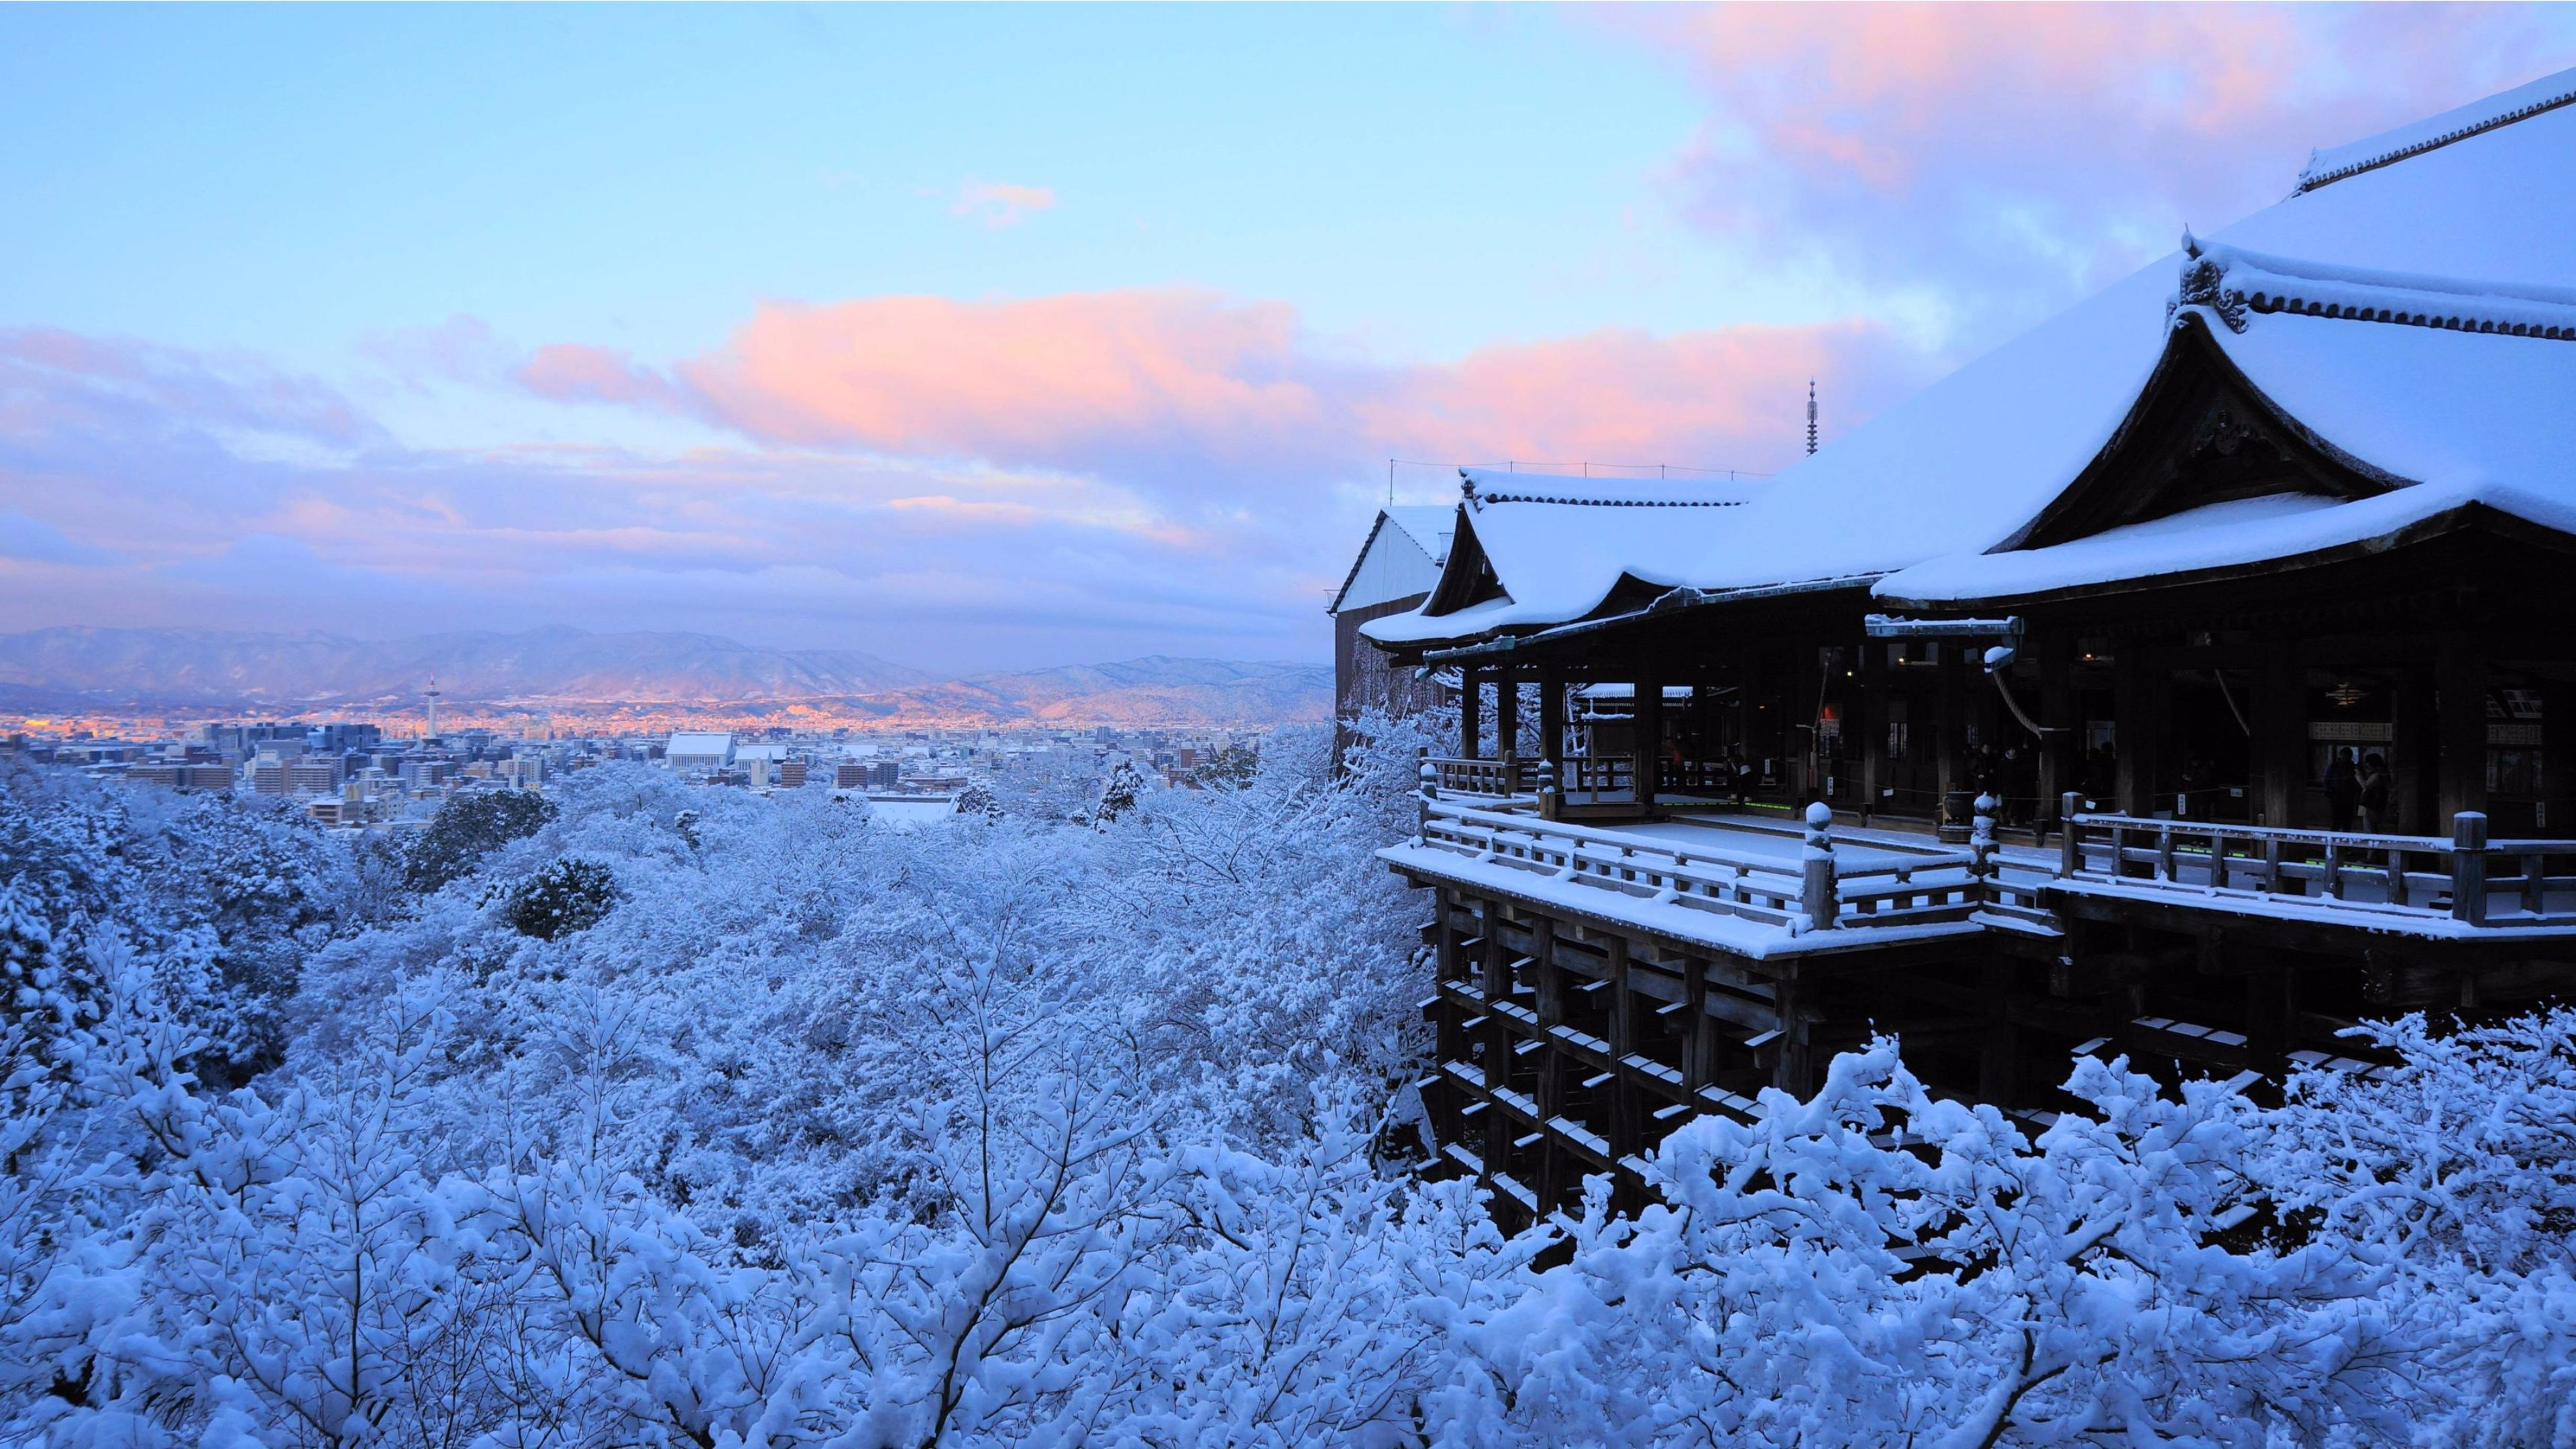 images of winter scenery